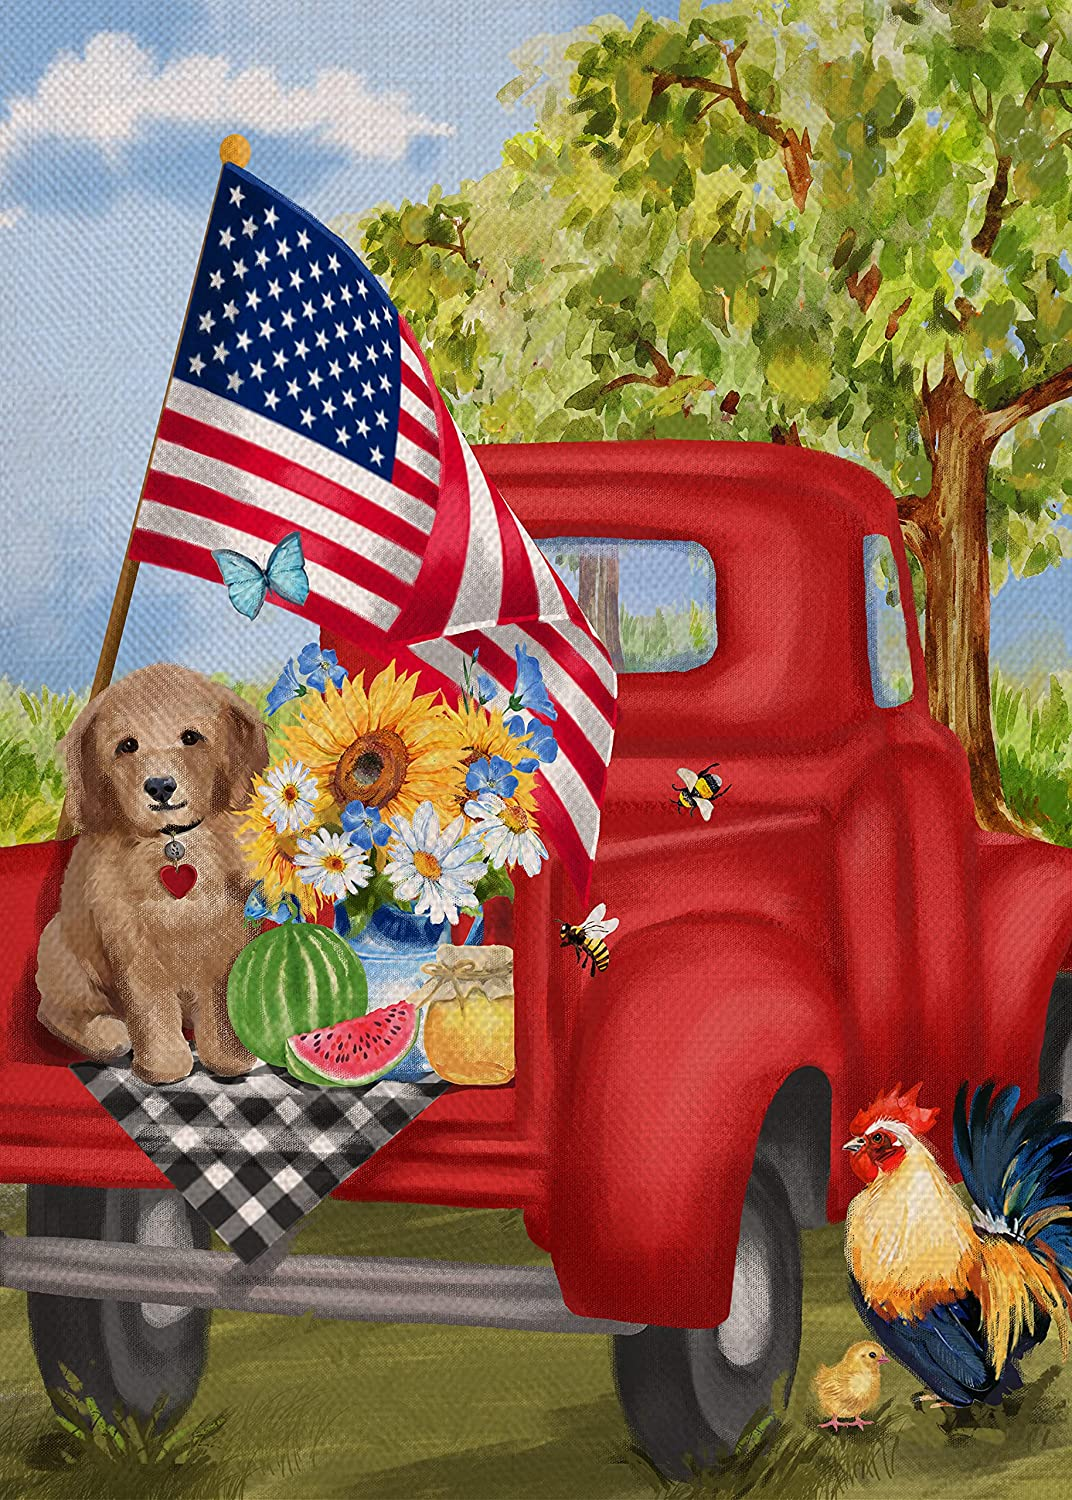 Covido Home Decorative Red Truck Dog Garden Flag, American July 4th House Yard Outside Decor Summer Watermelon Flower Plaid Decorations, USA Patriotic Farmhouse Outdoor Small Flag Double Sided 12 x 18